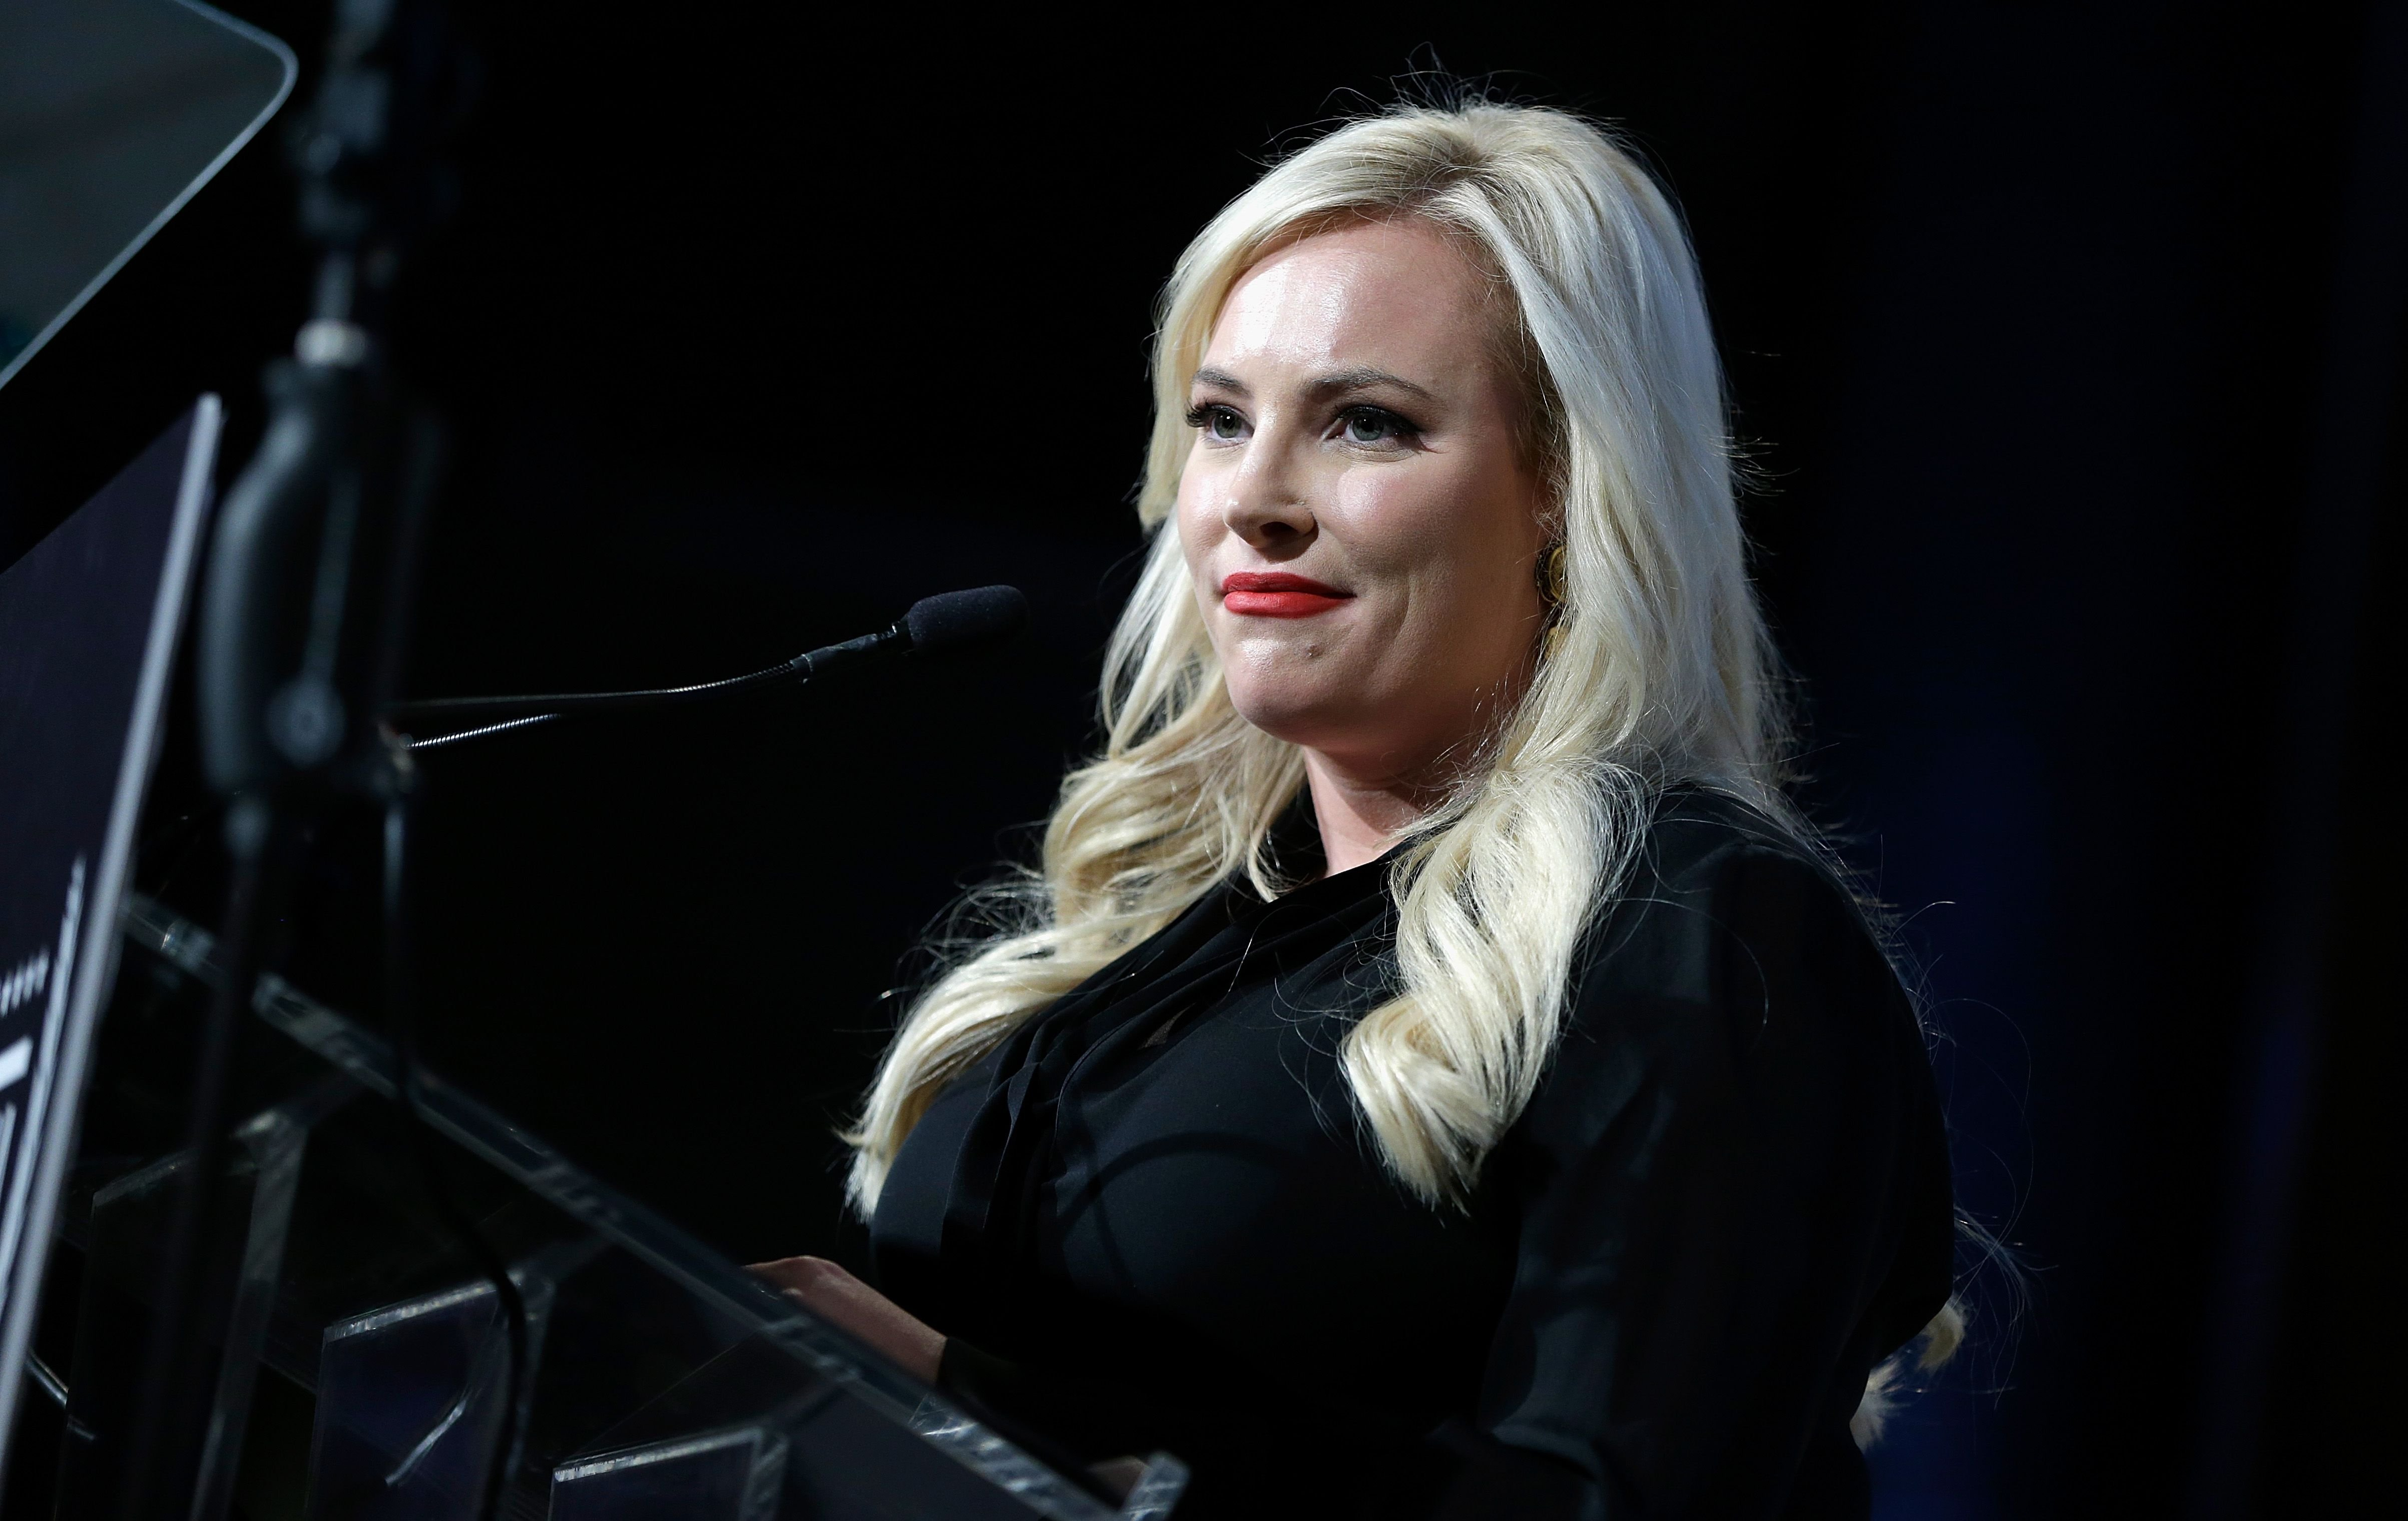 Meghan McCain at 11th Annual IAVA Heroes Gala at Cipriani 42nd Street on November 9, 2017, in New York City | Photo: John Lamparski/WireImage/Getty Images